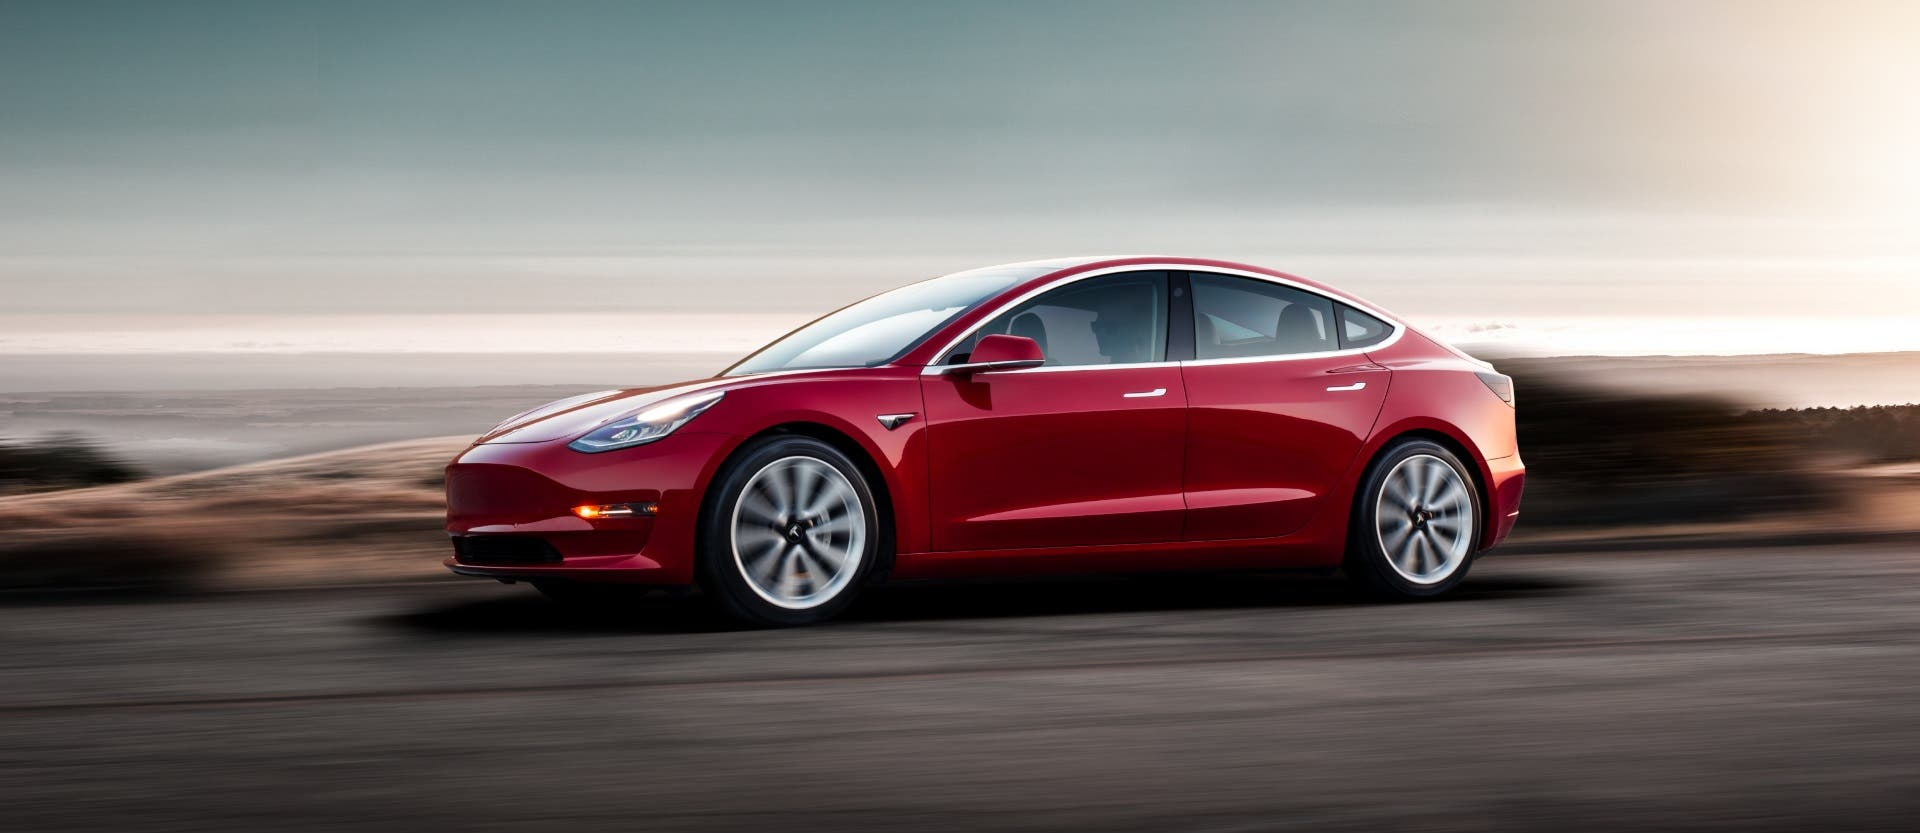 Tesla Model 3 Remains In Top 10 Autos In June As UK EV Market Share Hits 9.5%